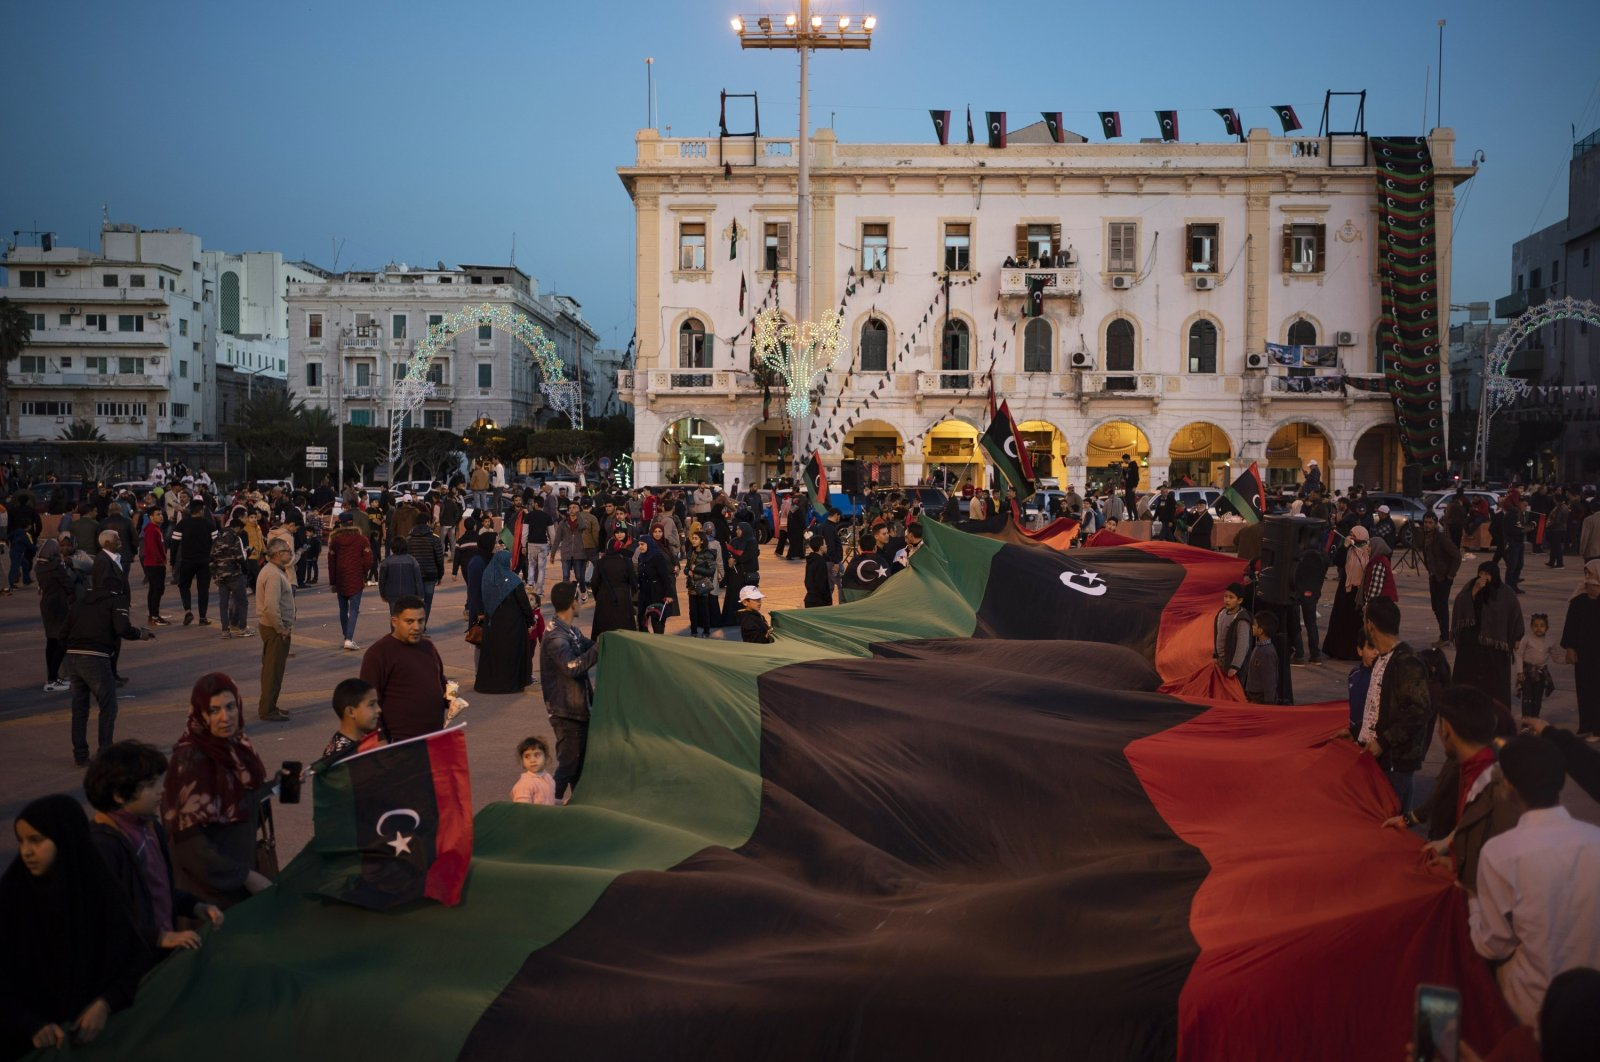 People carry a giant Libyan flag in Martyrs Square during a march commemorating the anniversary of anti-Gadhafi protests in Tripoli, Libya, Feb. 25, 2020. (AP Photo)